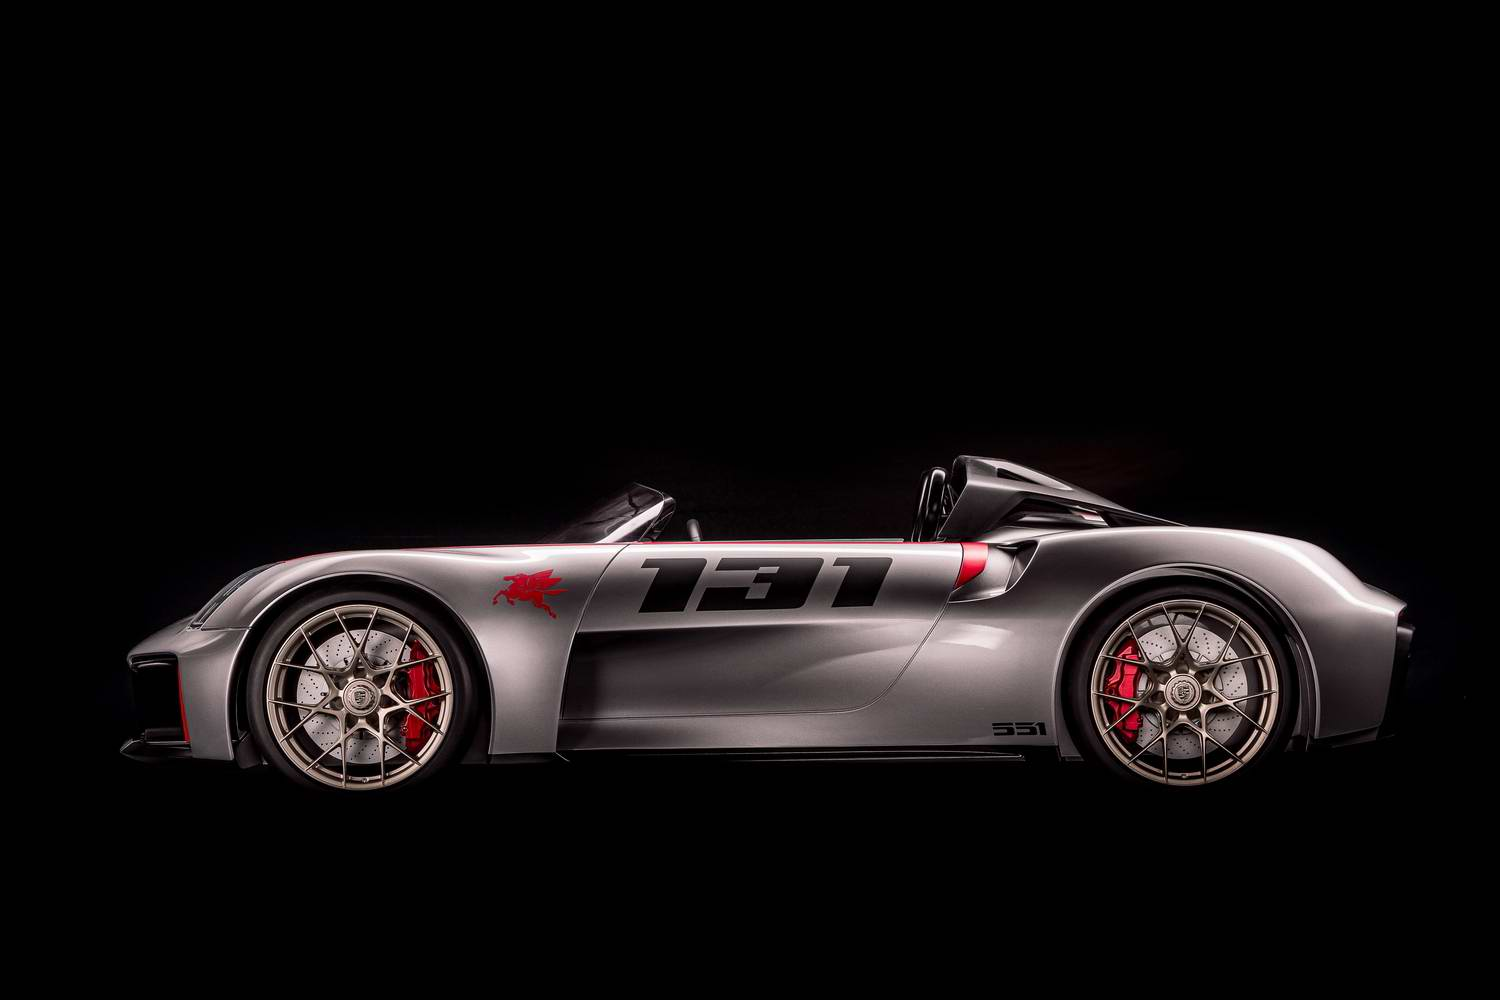 Porsche lifts lid on cars that never were